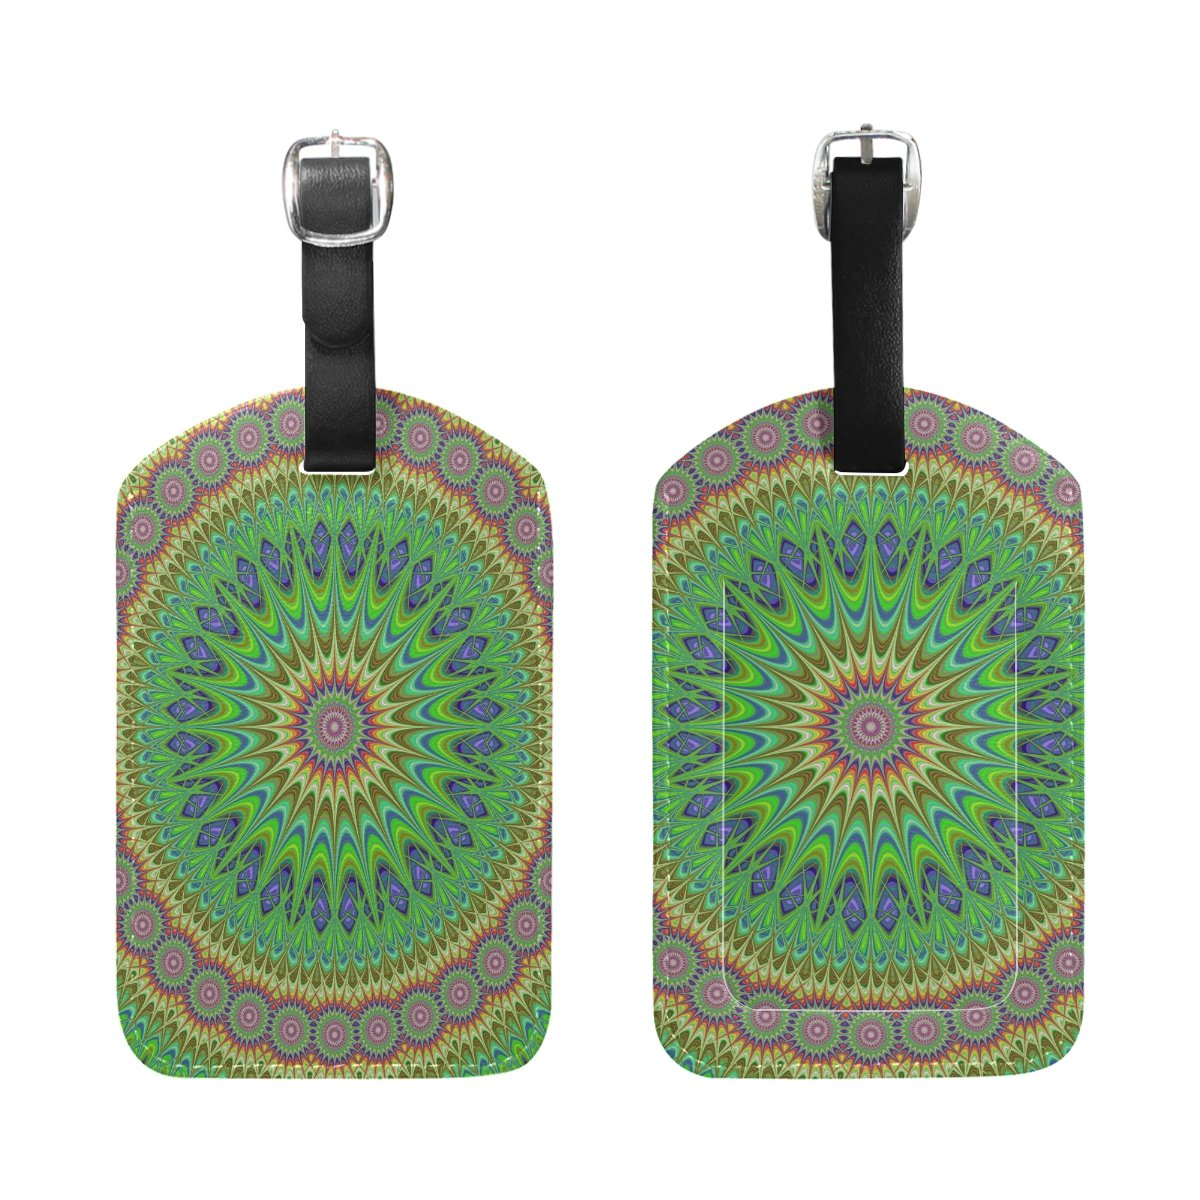 Saobao Travel Luggage Tag Colorful Mandala Fractal Design Background PU Leather Baggage Suitcase Travel ID Bag Tag 1Pcs